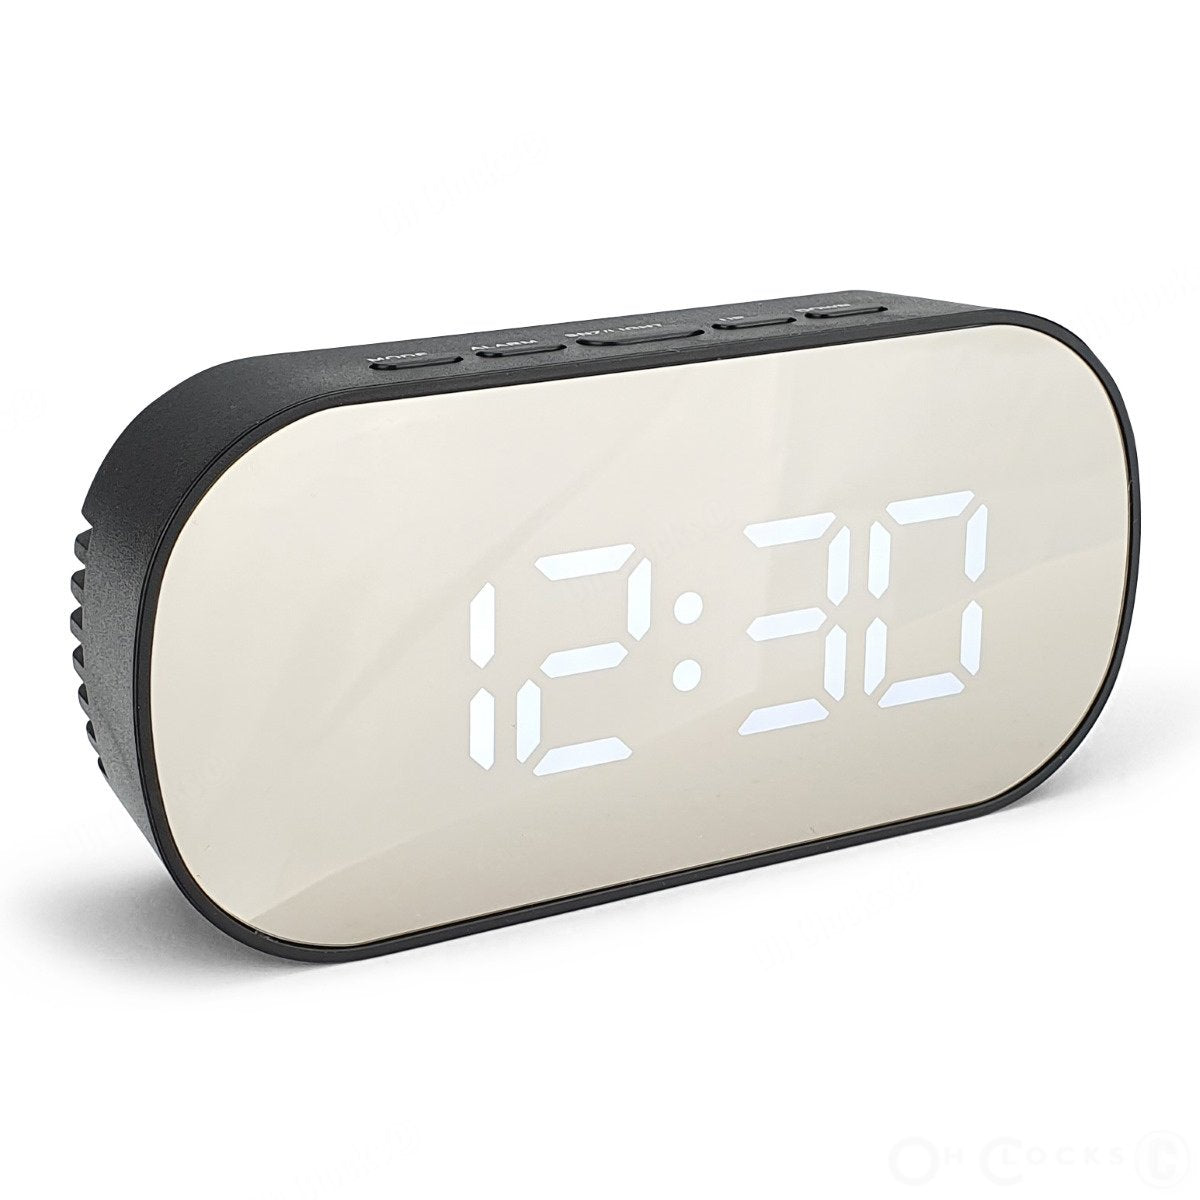 Checkmate Hudson Mirrored Face LCD Alarm Clock Black 13cm VGW 6506 BLA 1